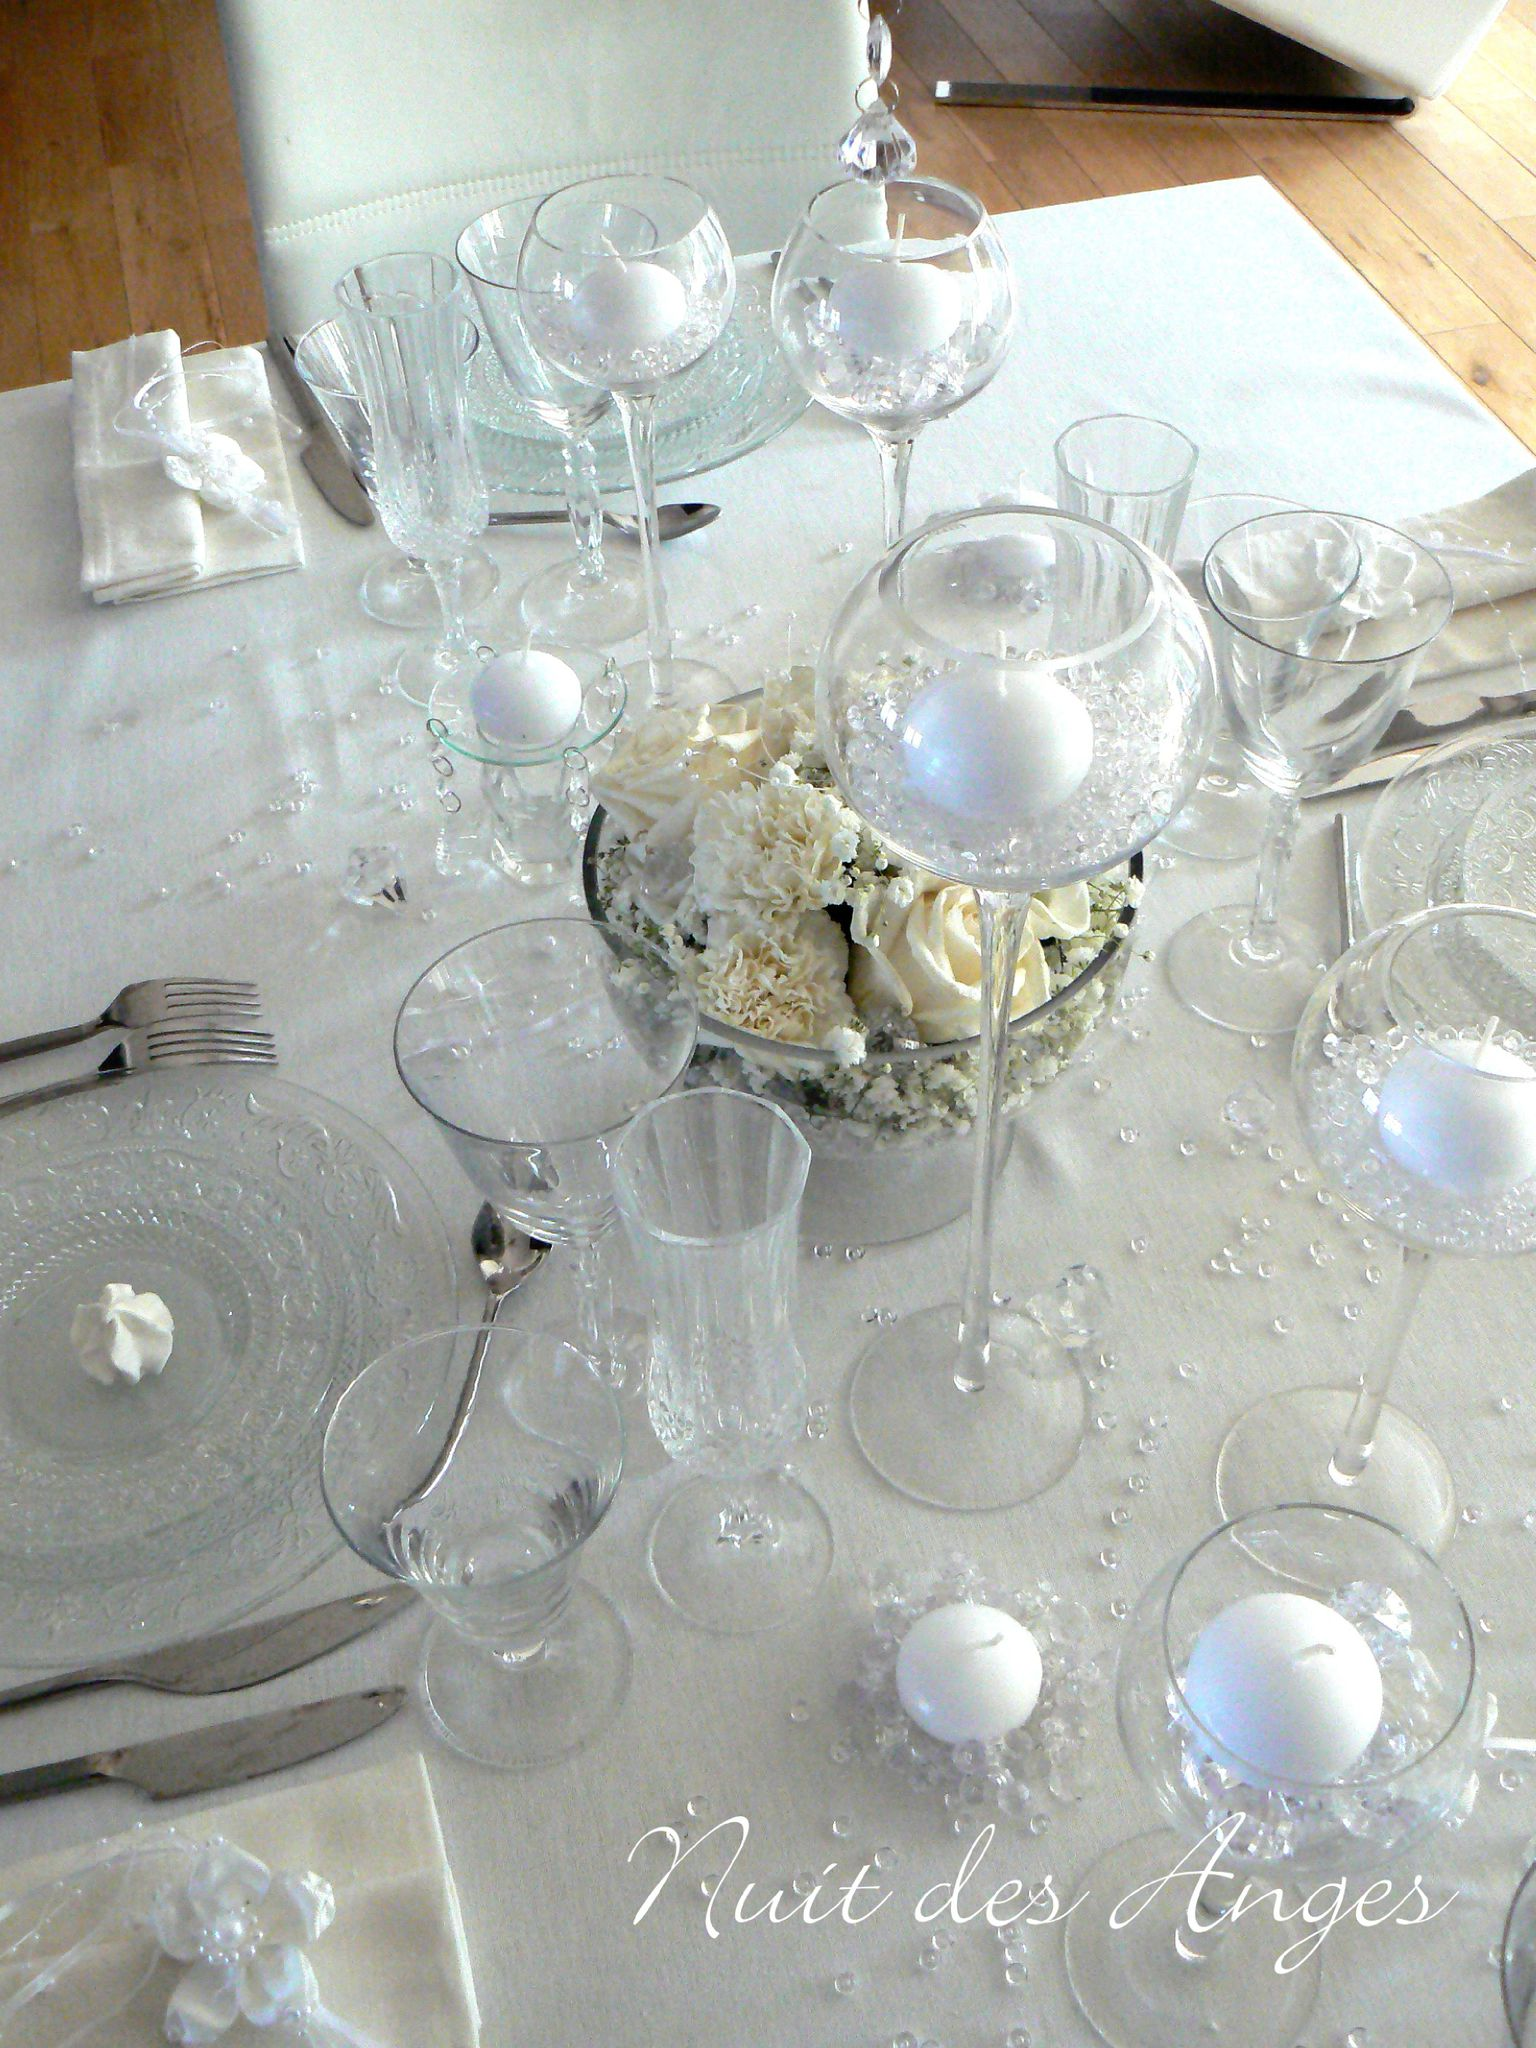 D coration de table blanche nuit des anges - Decoration de table de noel blanche ...